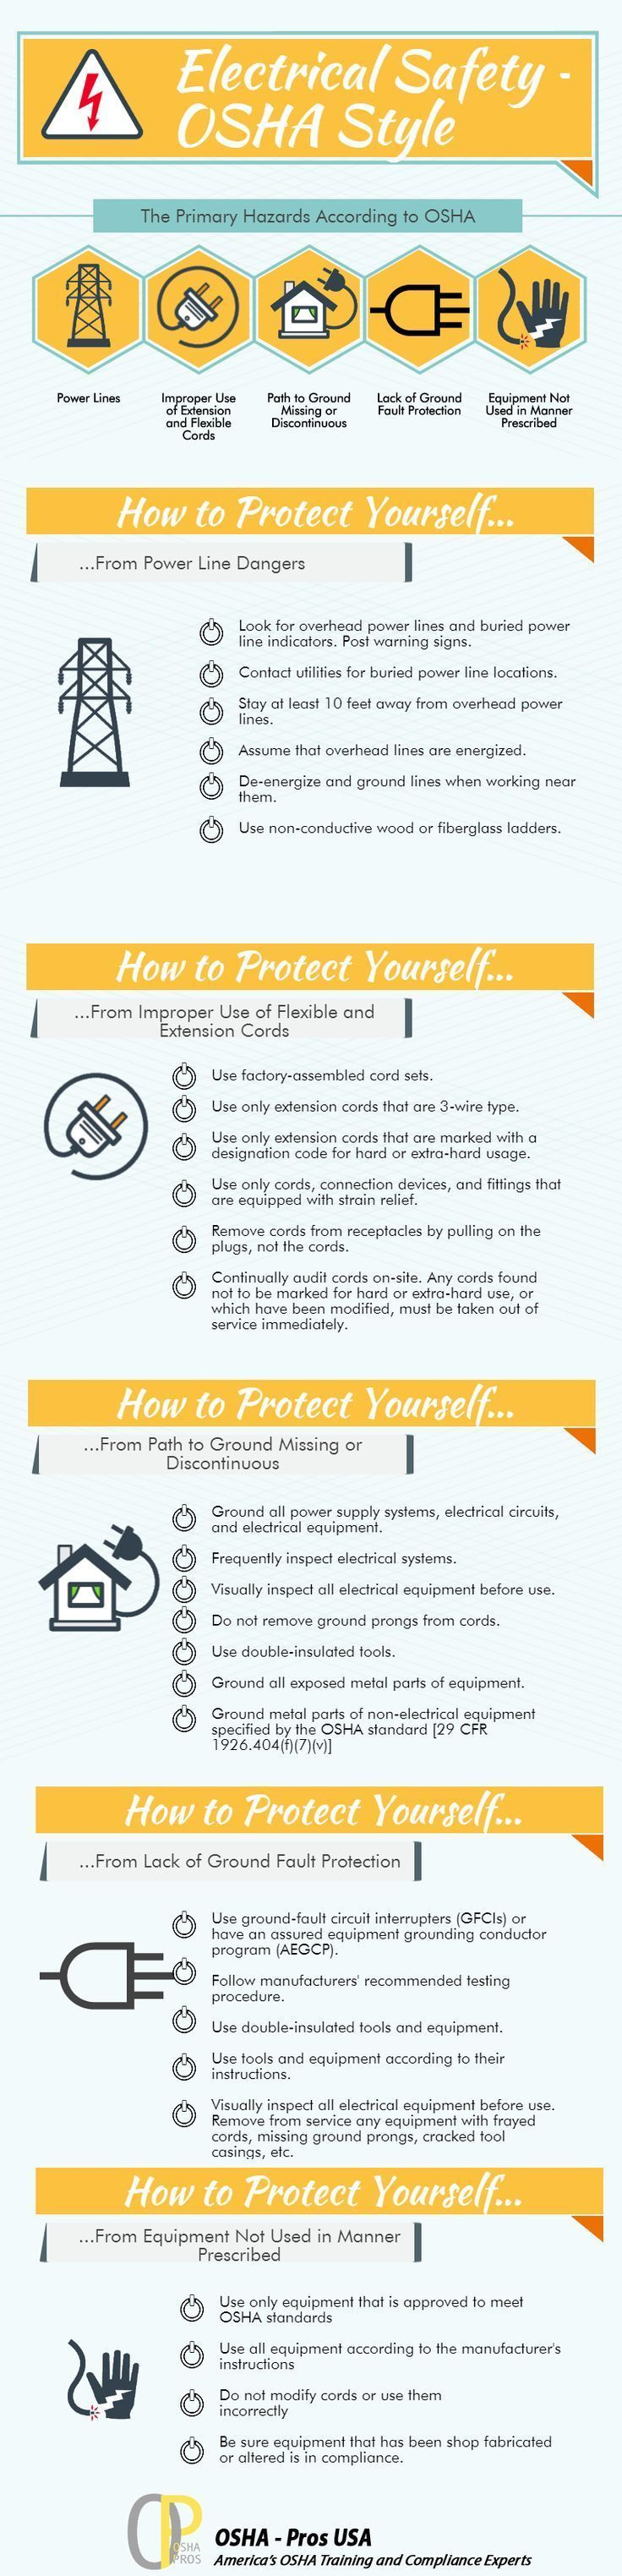 26 best electrical safety images on pinterest electrical safety osha identifies 5 major electrical safety hazards find out what they are and how to avoid them with our safety training infographic solutioingenieria Images